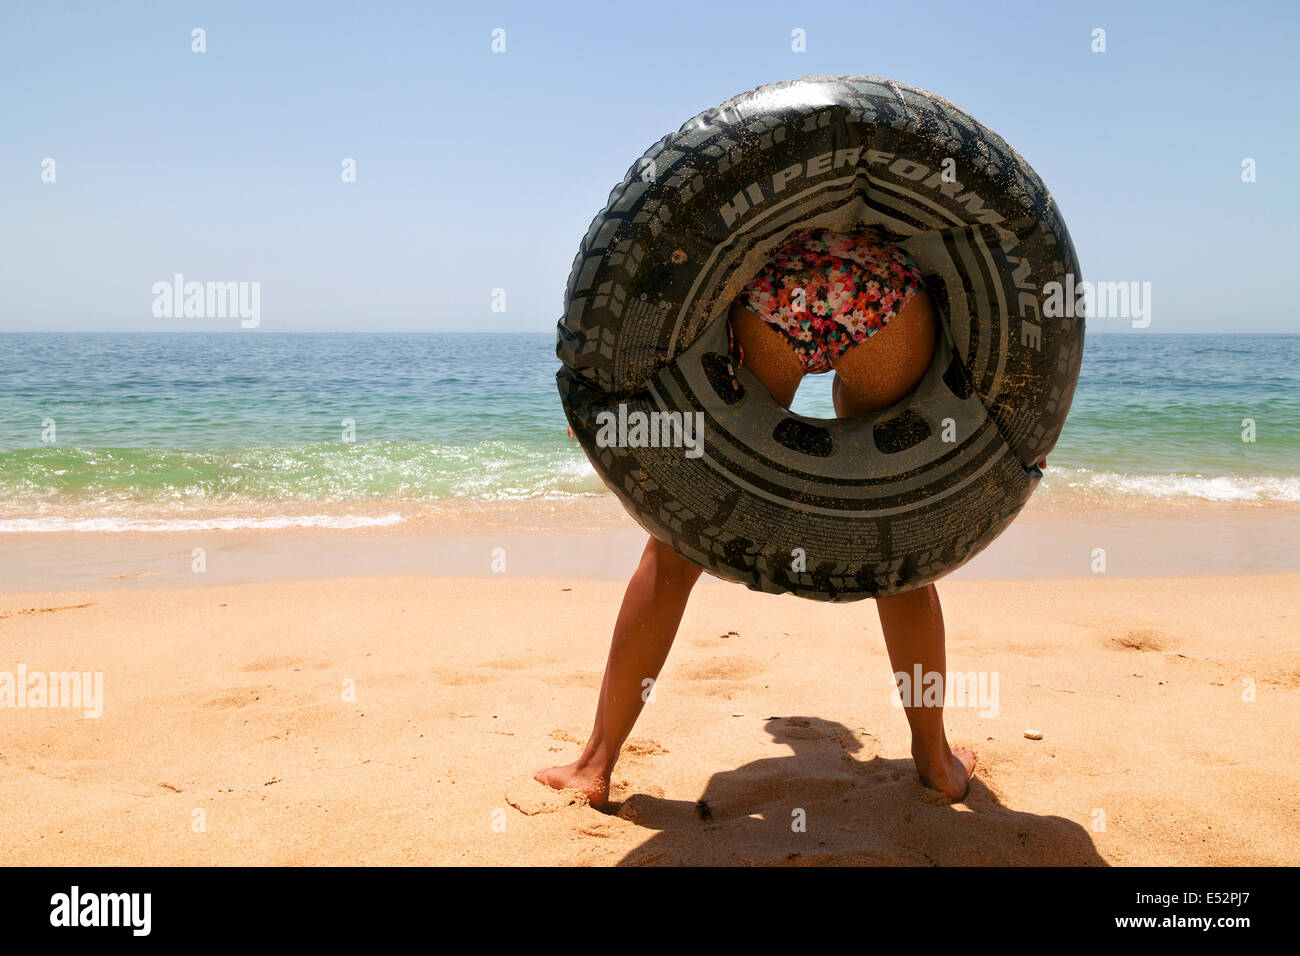 young-woman-standing-up-on-a-beach-with-a-rubber-ring-round-her-bottom-E52PJ7.jpg